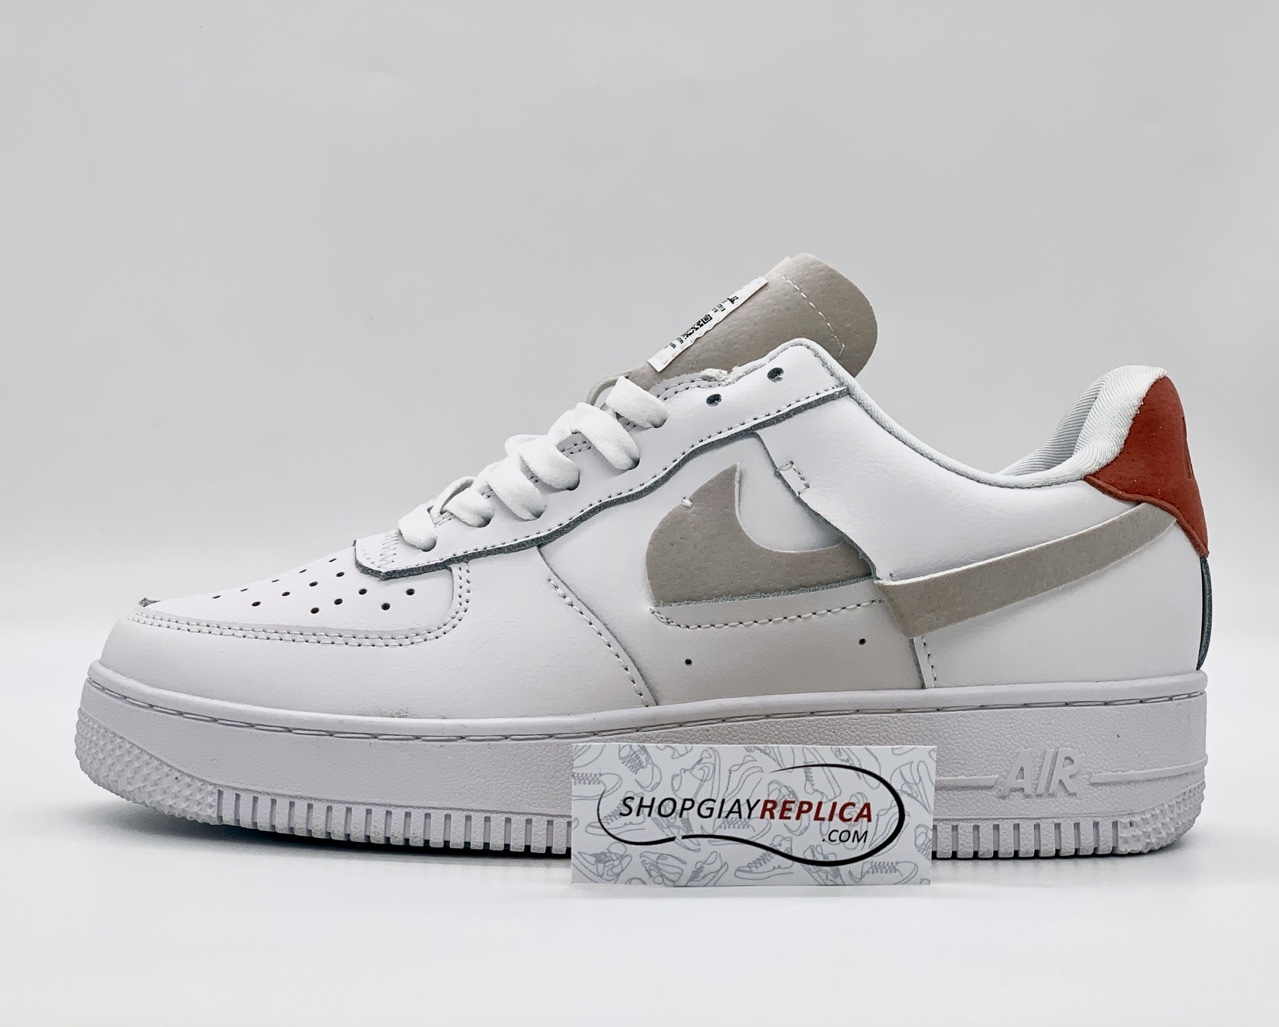 Giày Nike Air Force 1 LX Vandalized White rep 1 1